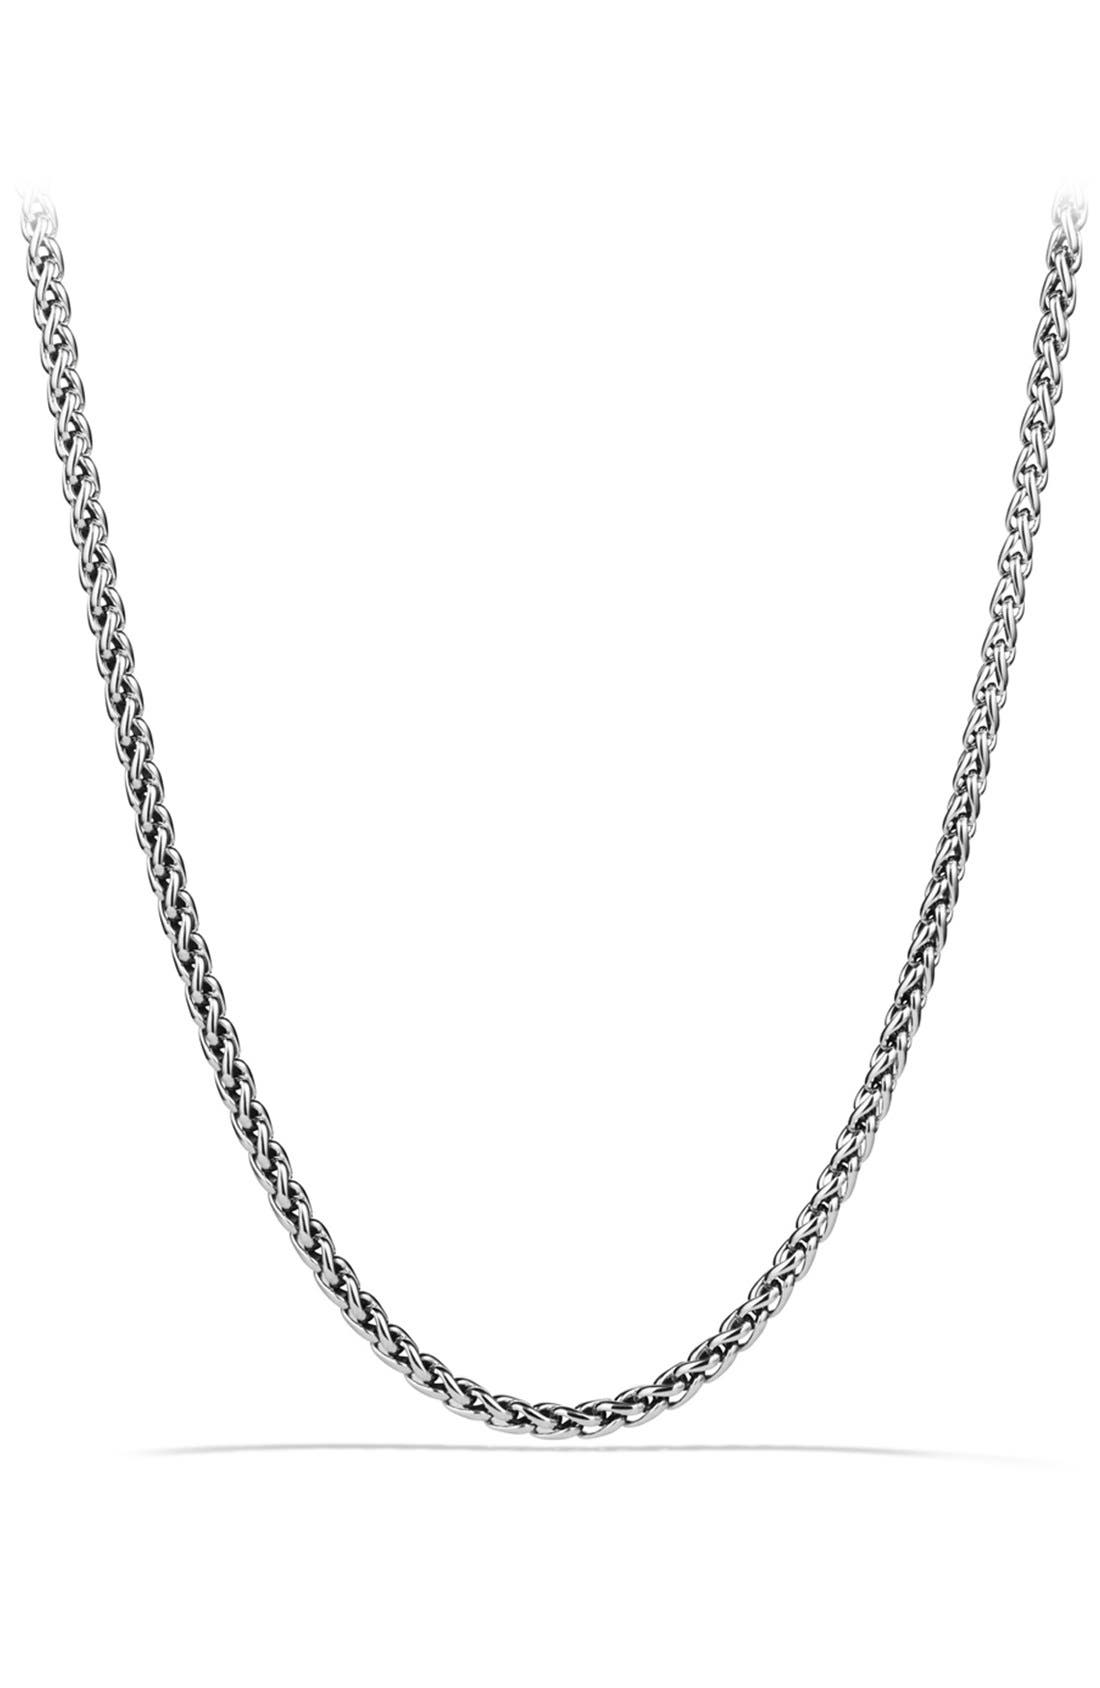 'Chain' Wheat Link Necklace,                         Main,                         color, Silver